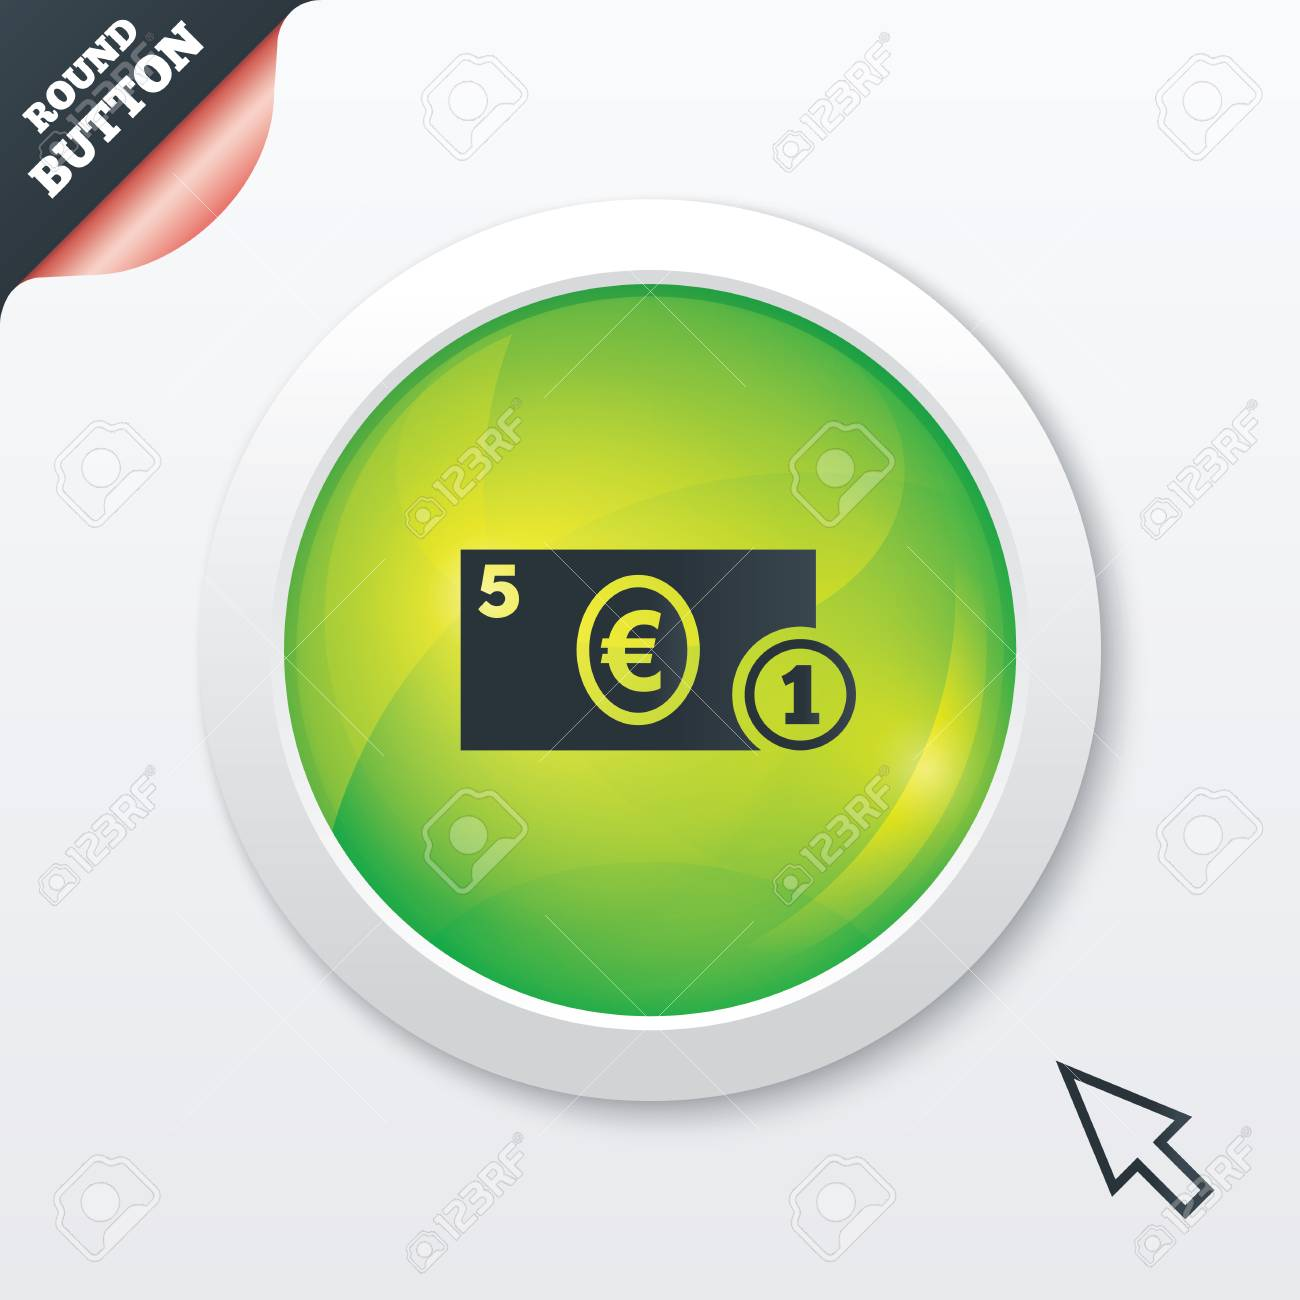 Cash Sign Icon Euro Money Symbol Eur Coin And Paper Money Stock